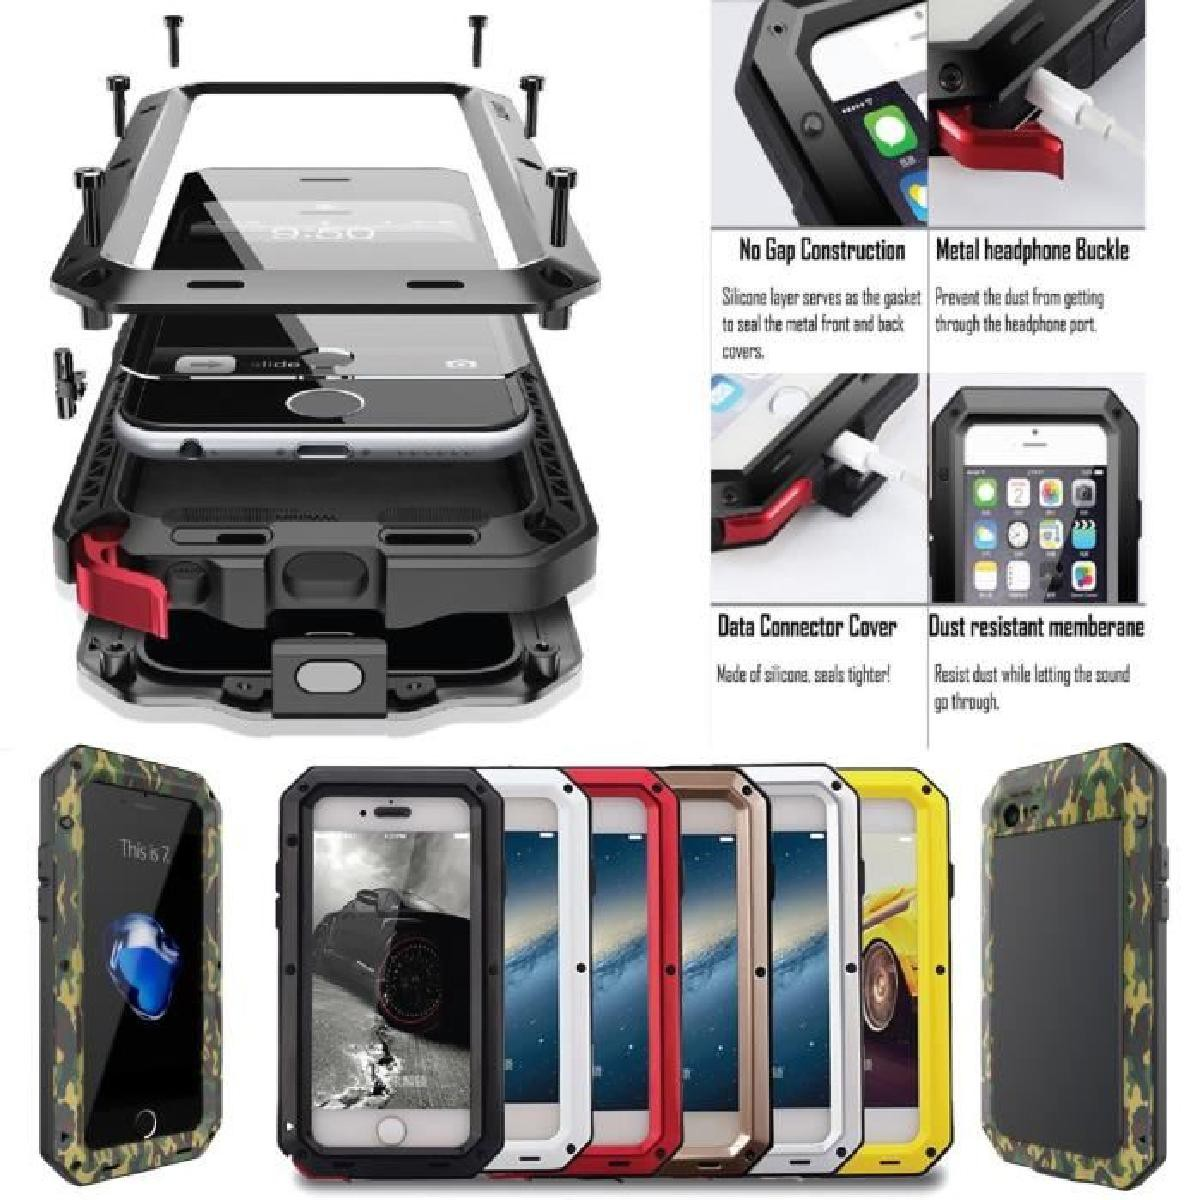 TargetVision – New Longshot Hawk, Marksman and ULTRA HD LR-3 - Page 3 Coque_iphone_7_incassable_antichoc-506fro